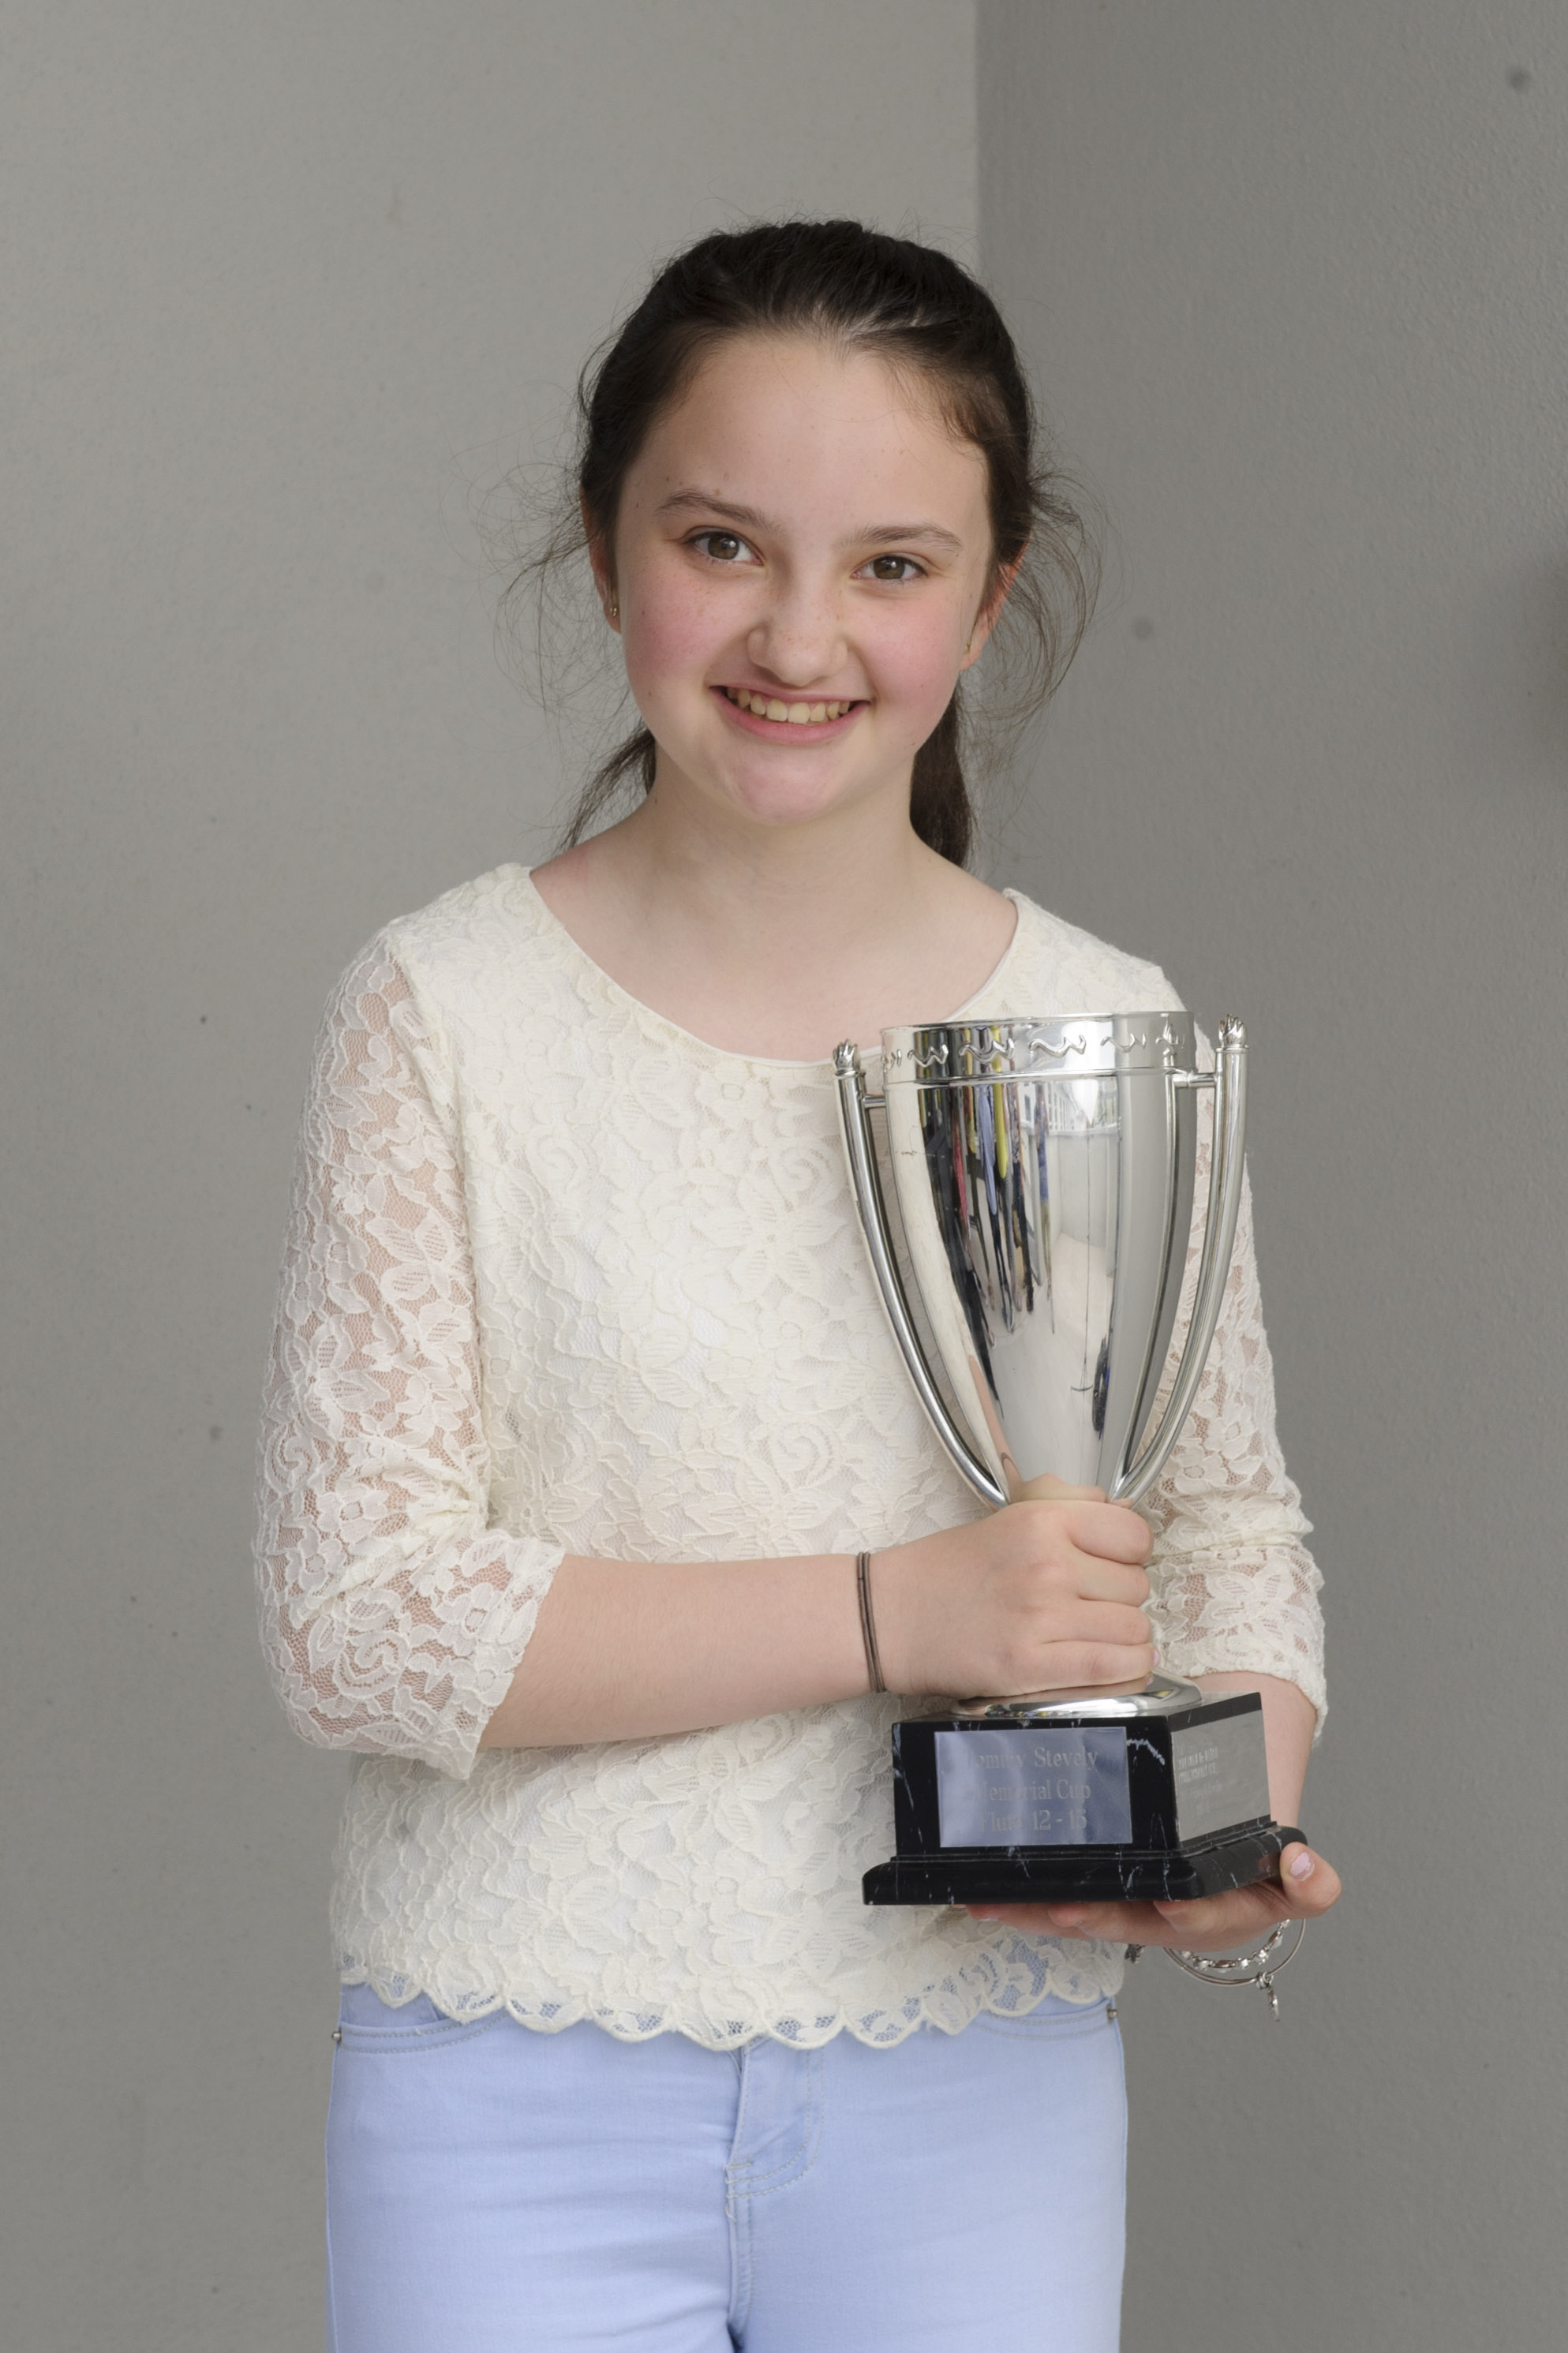 Orla Corrigan, Baile Mhuineacháin CCE, who was the winner of the U-15 Fiddle Slow Air. ©Rory Geary/The Northern Standard